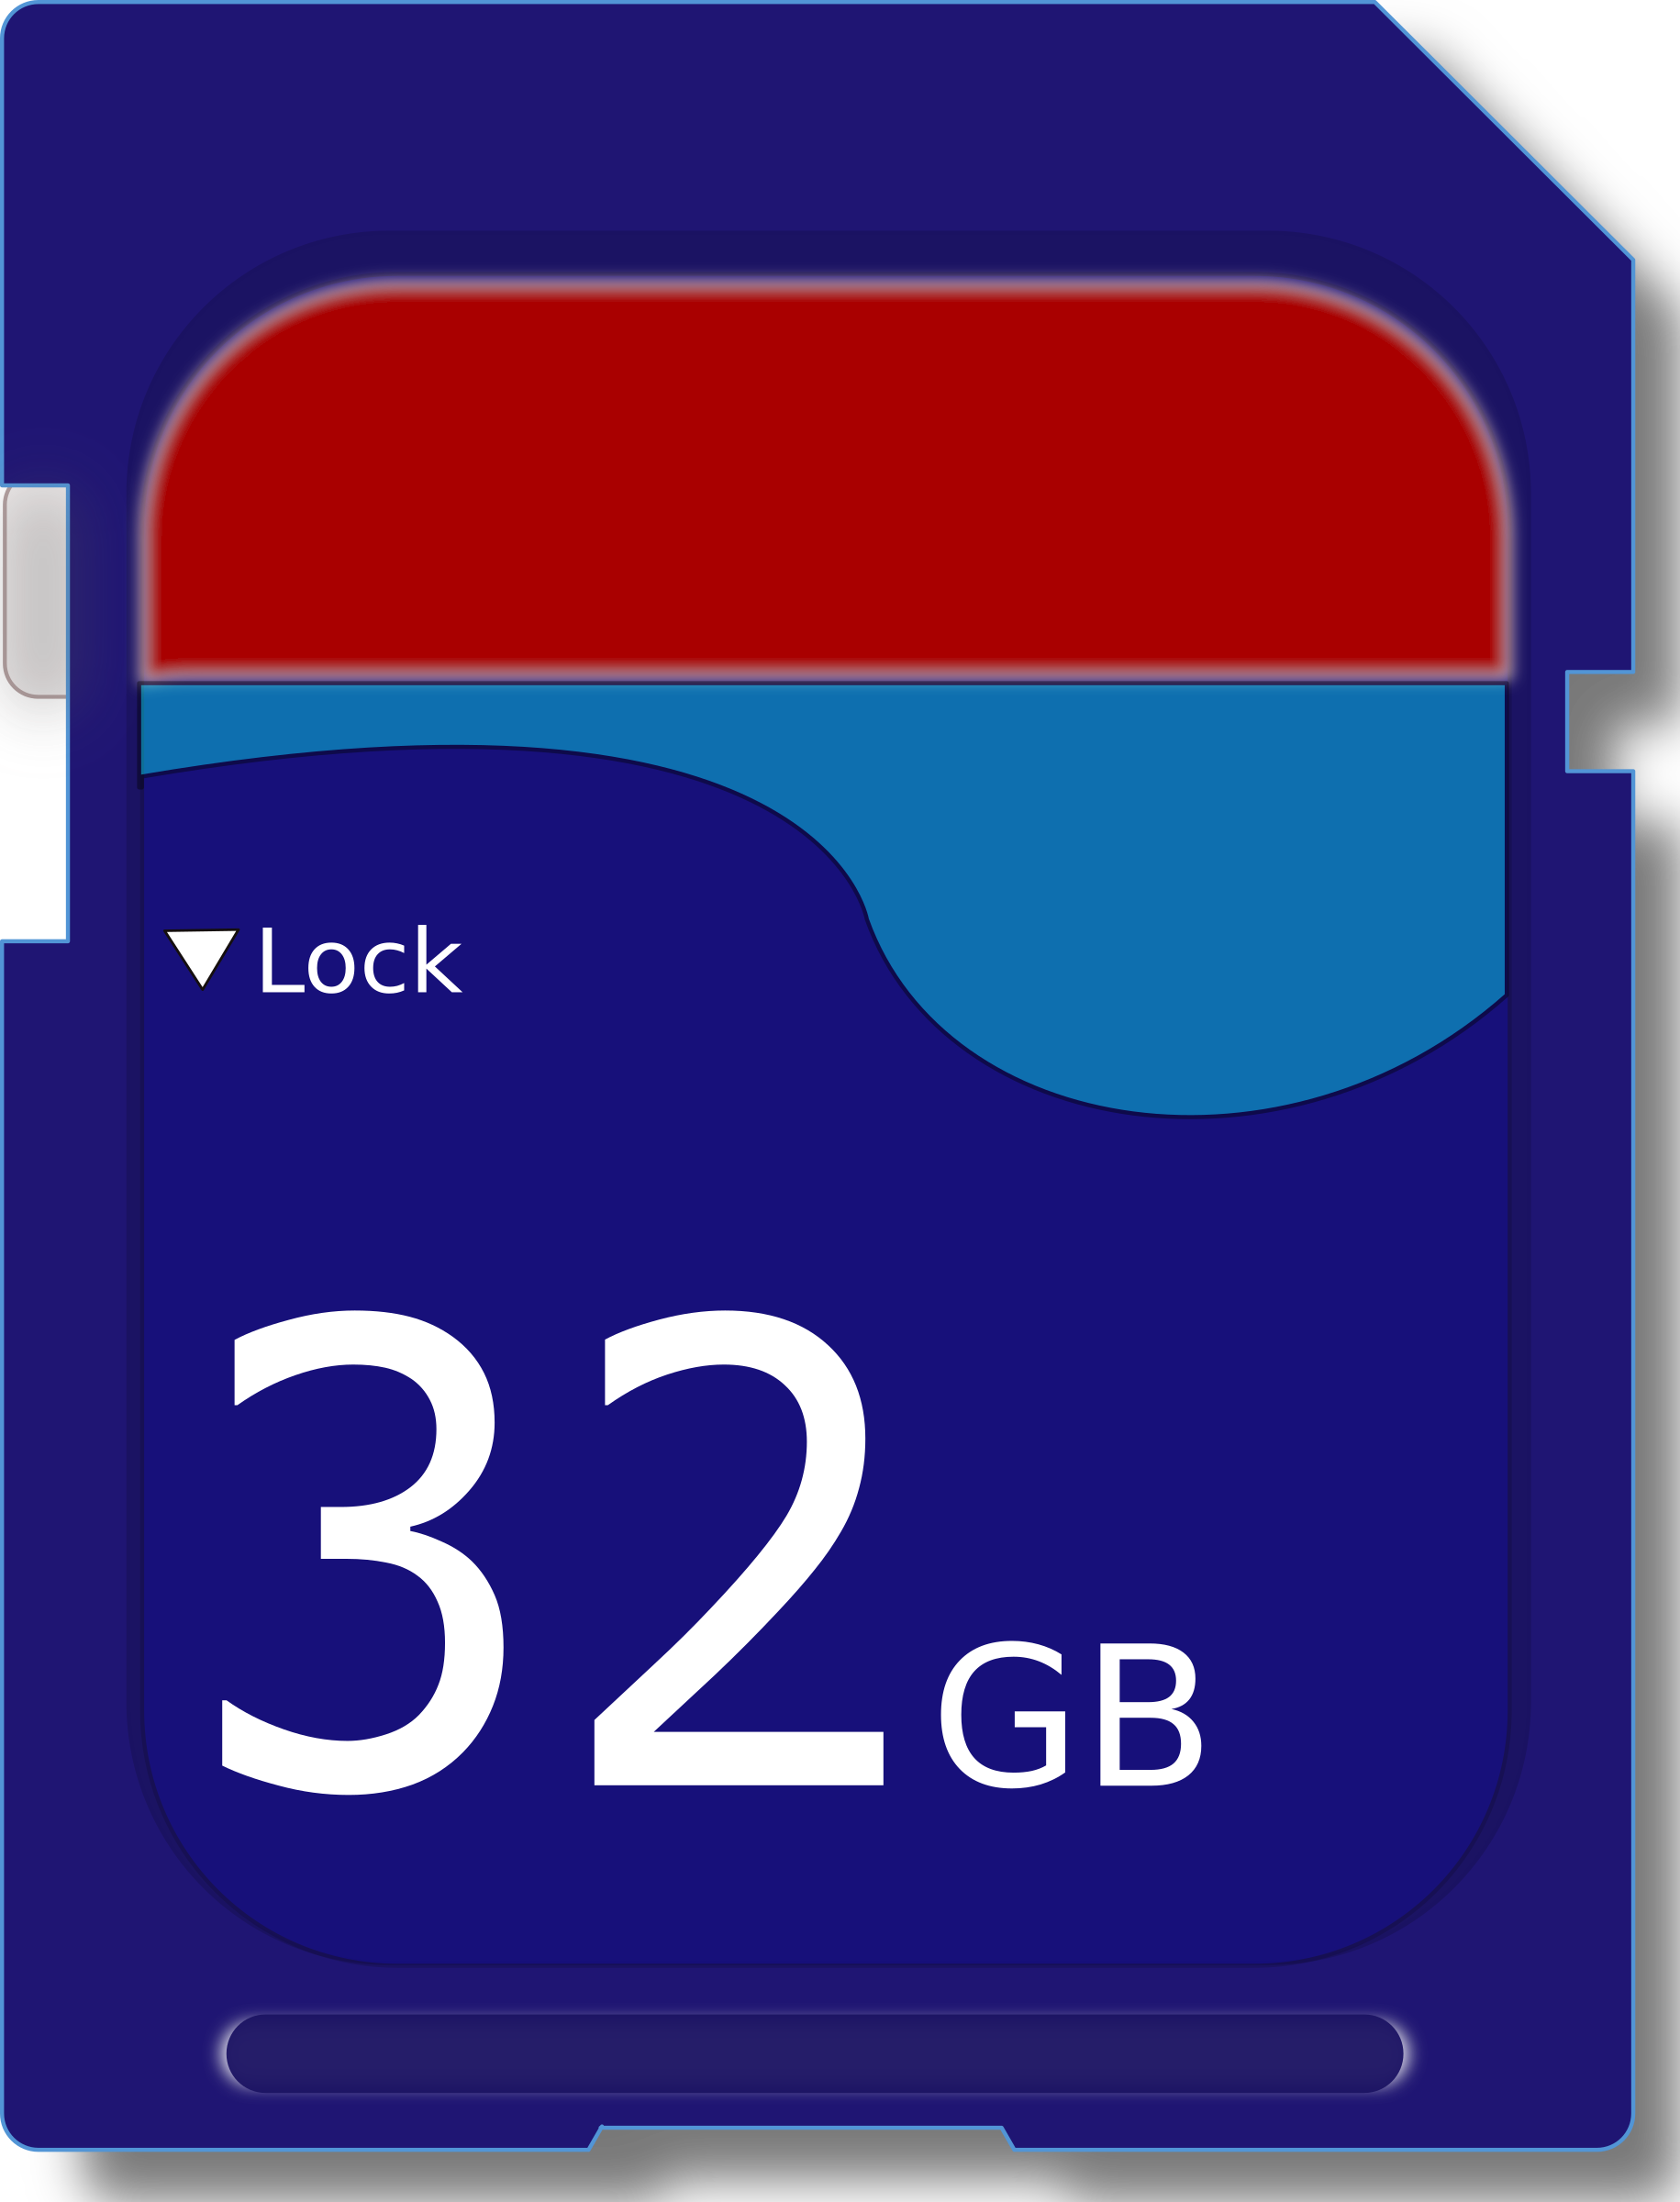 32GB SD Card by j4p4n